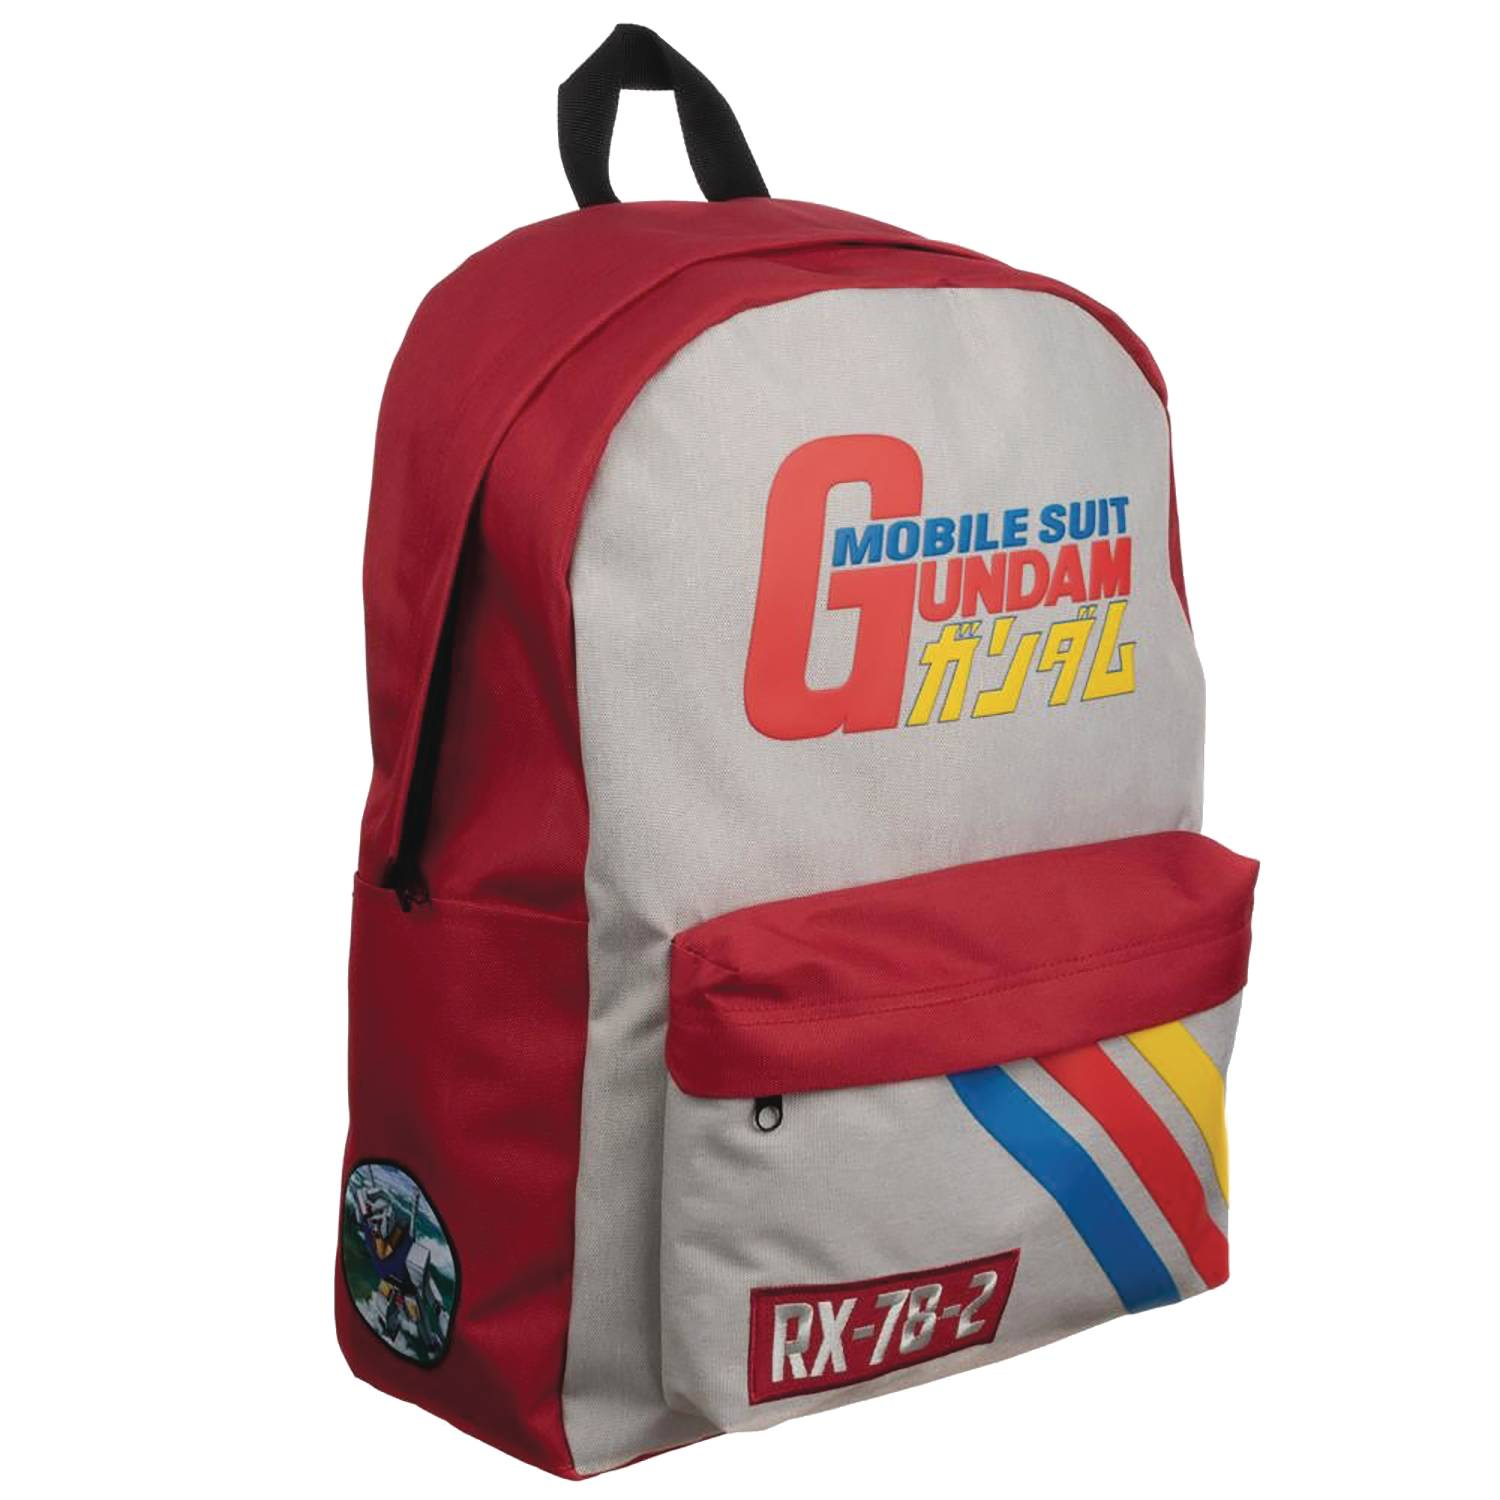 MOBILE SUIT GUNDAM RETRO BACKPACK